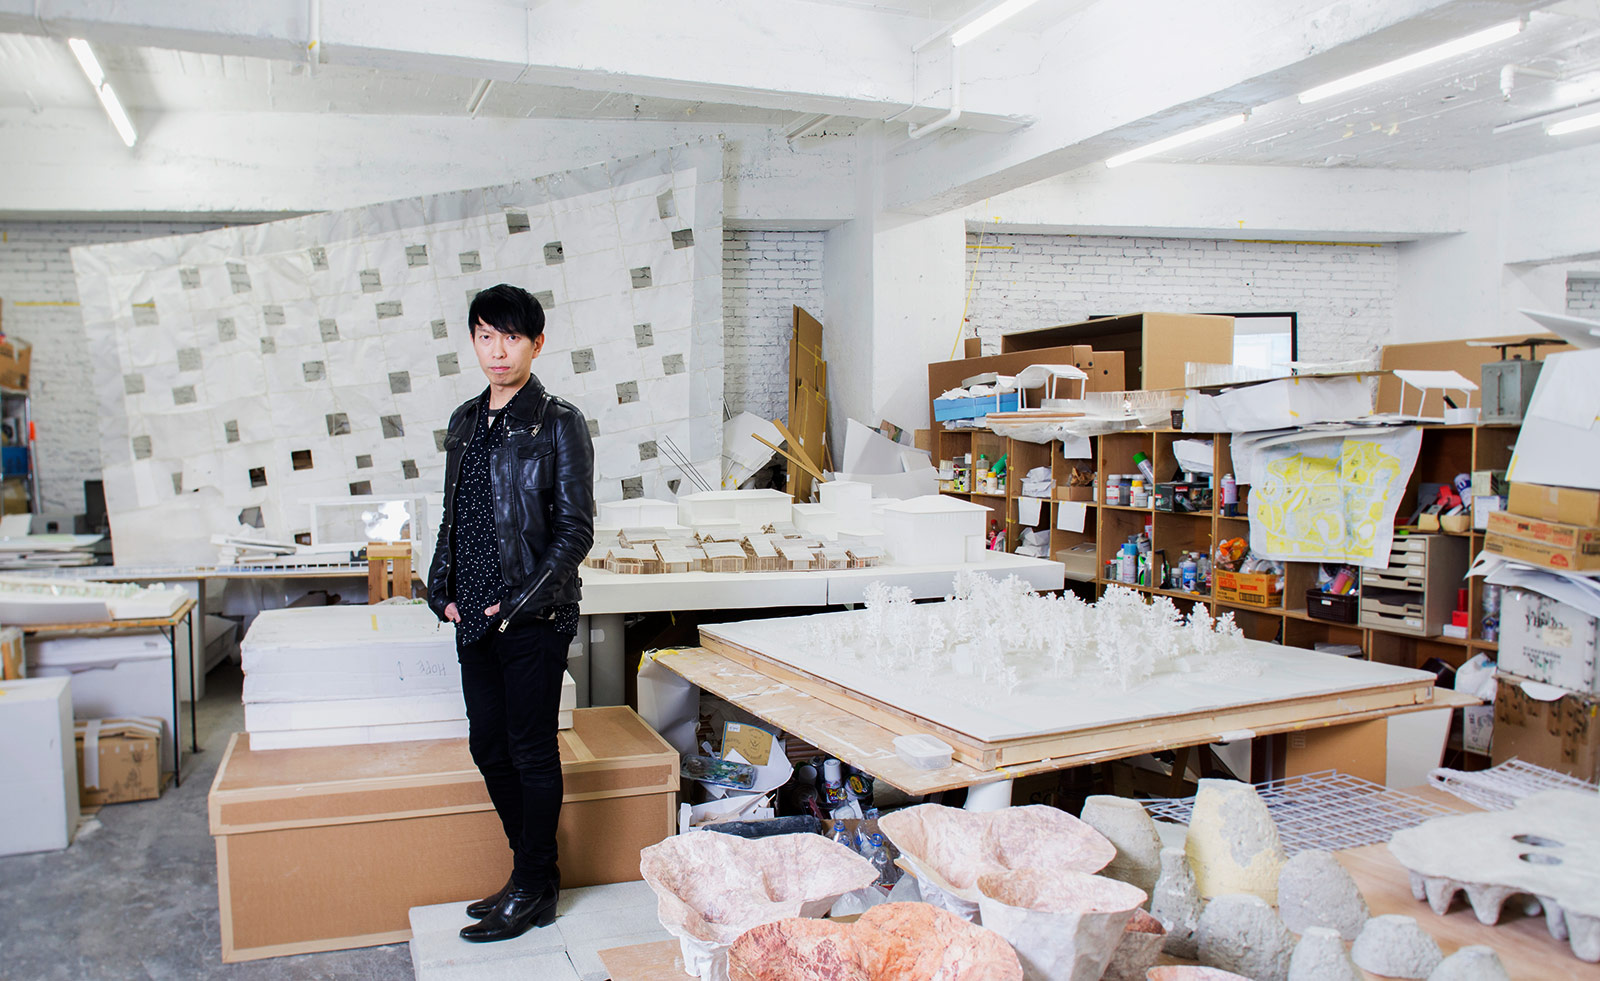 Junya Ishigami S Architecture Aims High And Digs Deep